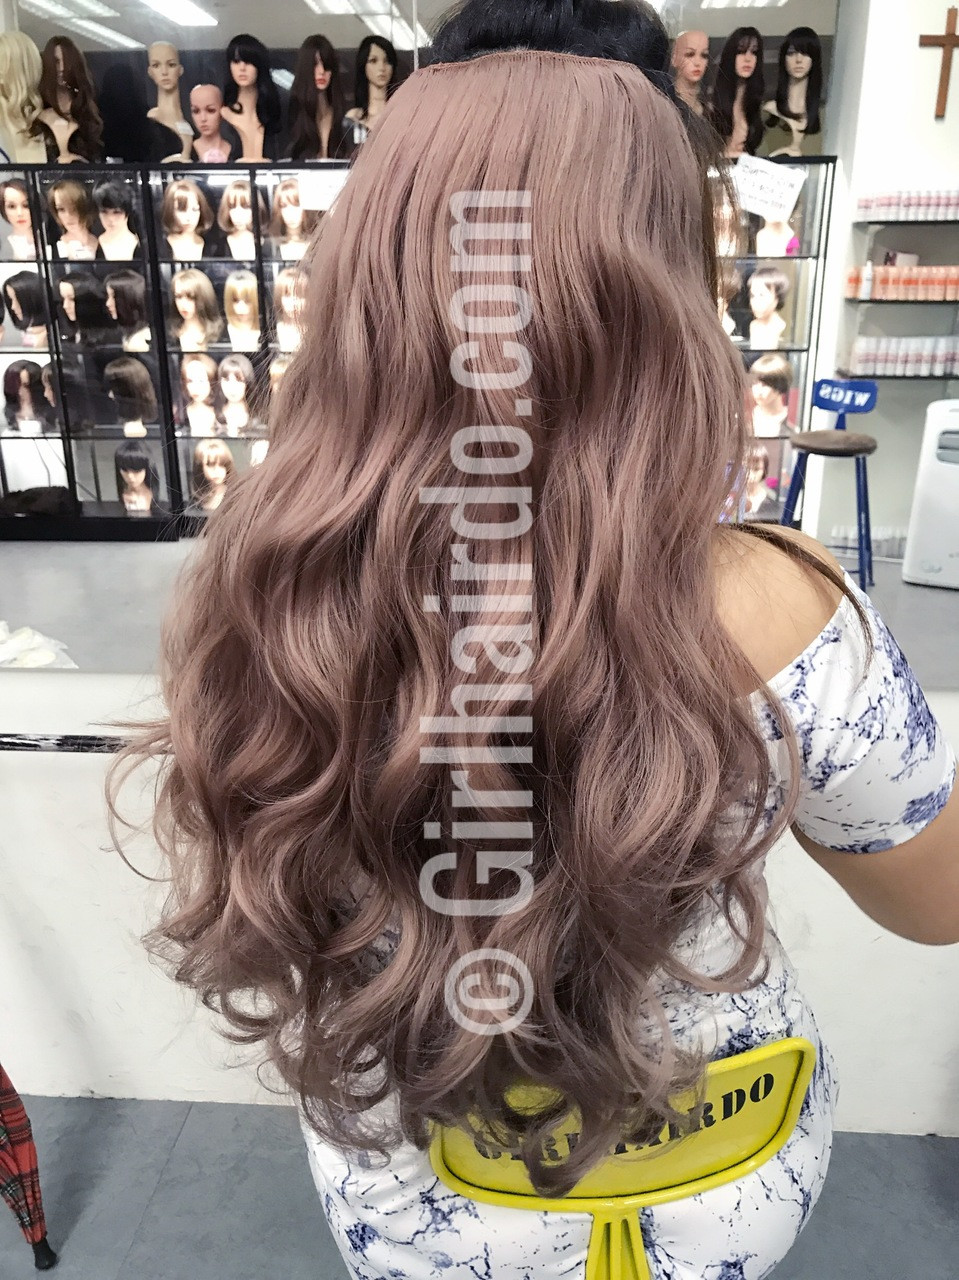 Pastel Pink Long Curly Hair Extensions Many Videos Inside